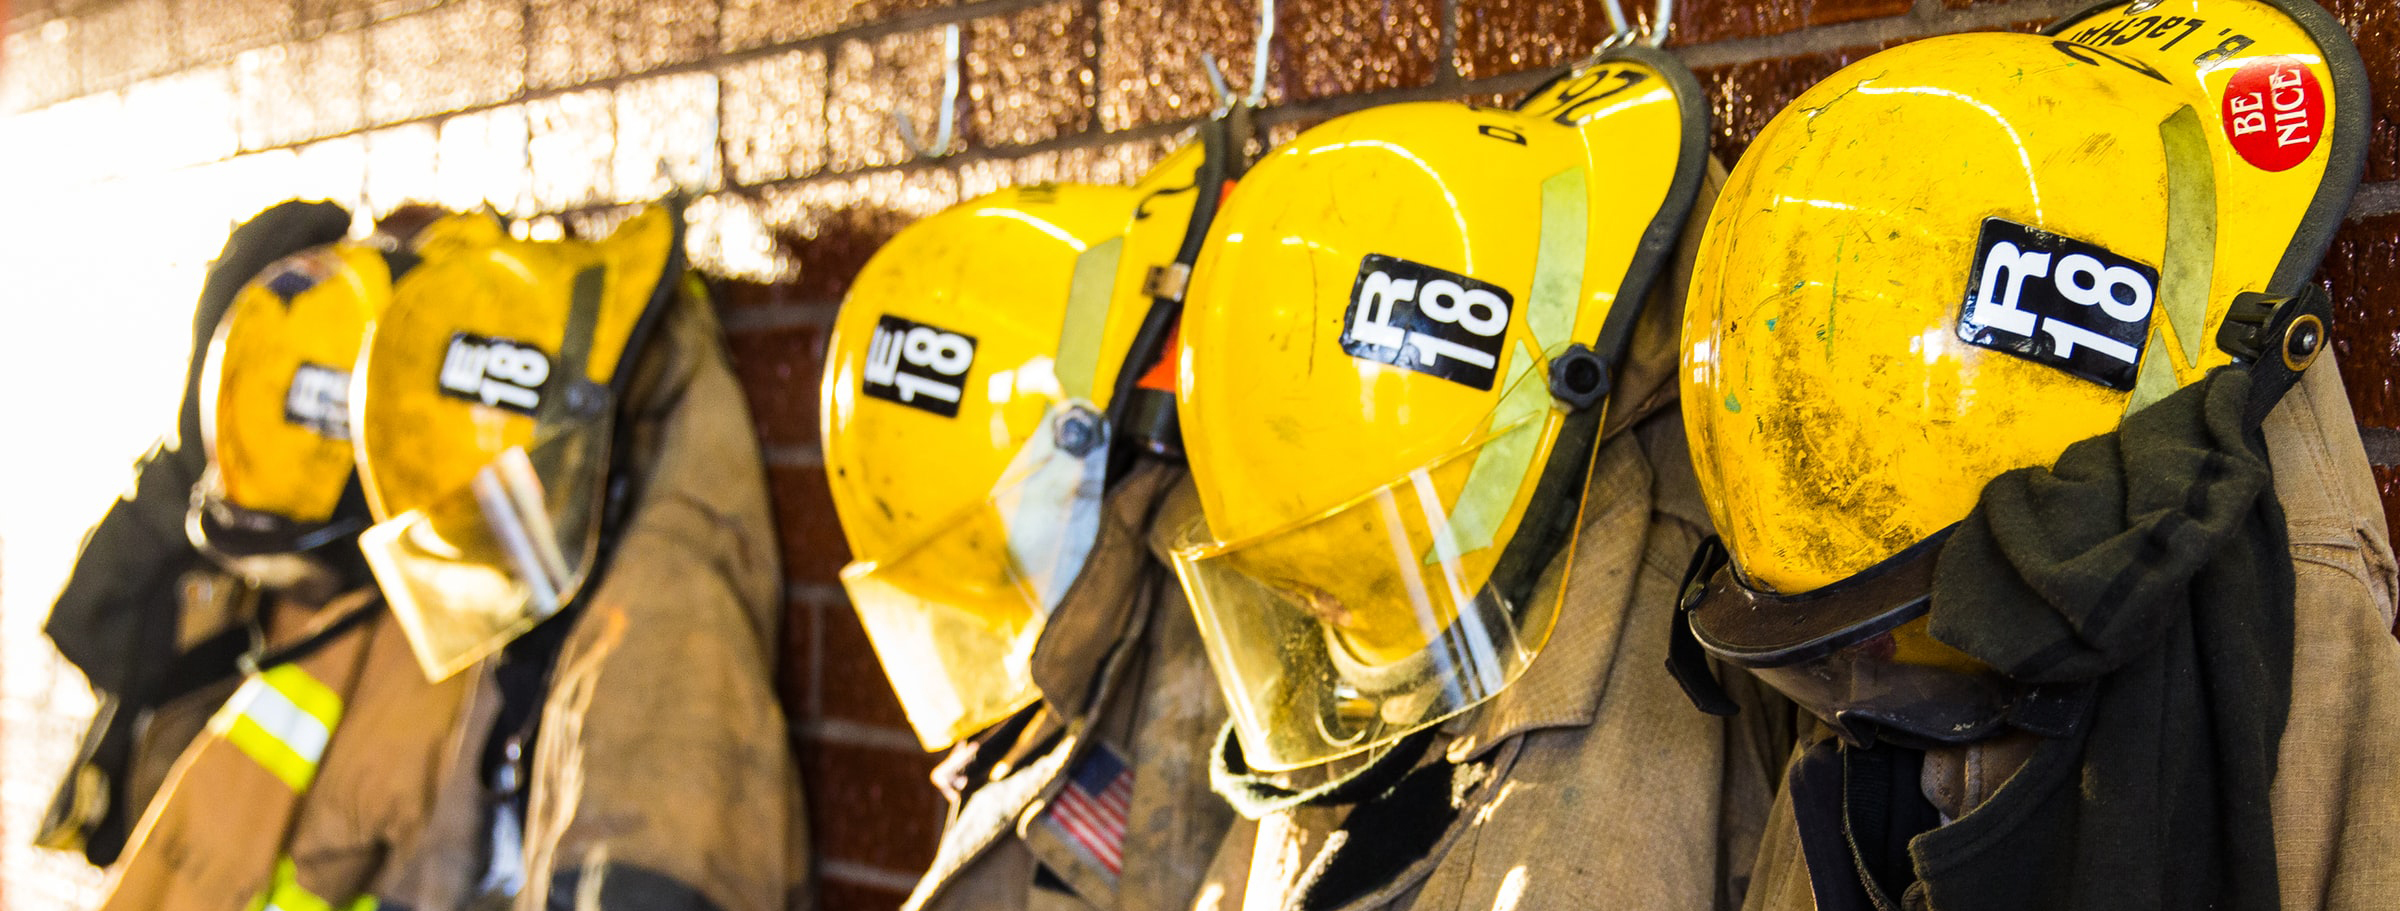 A line of firefighter suits hanging on hooks